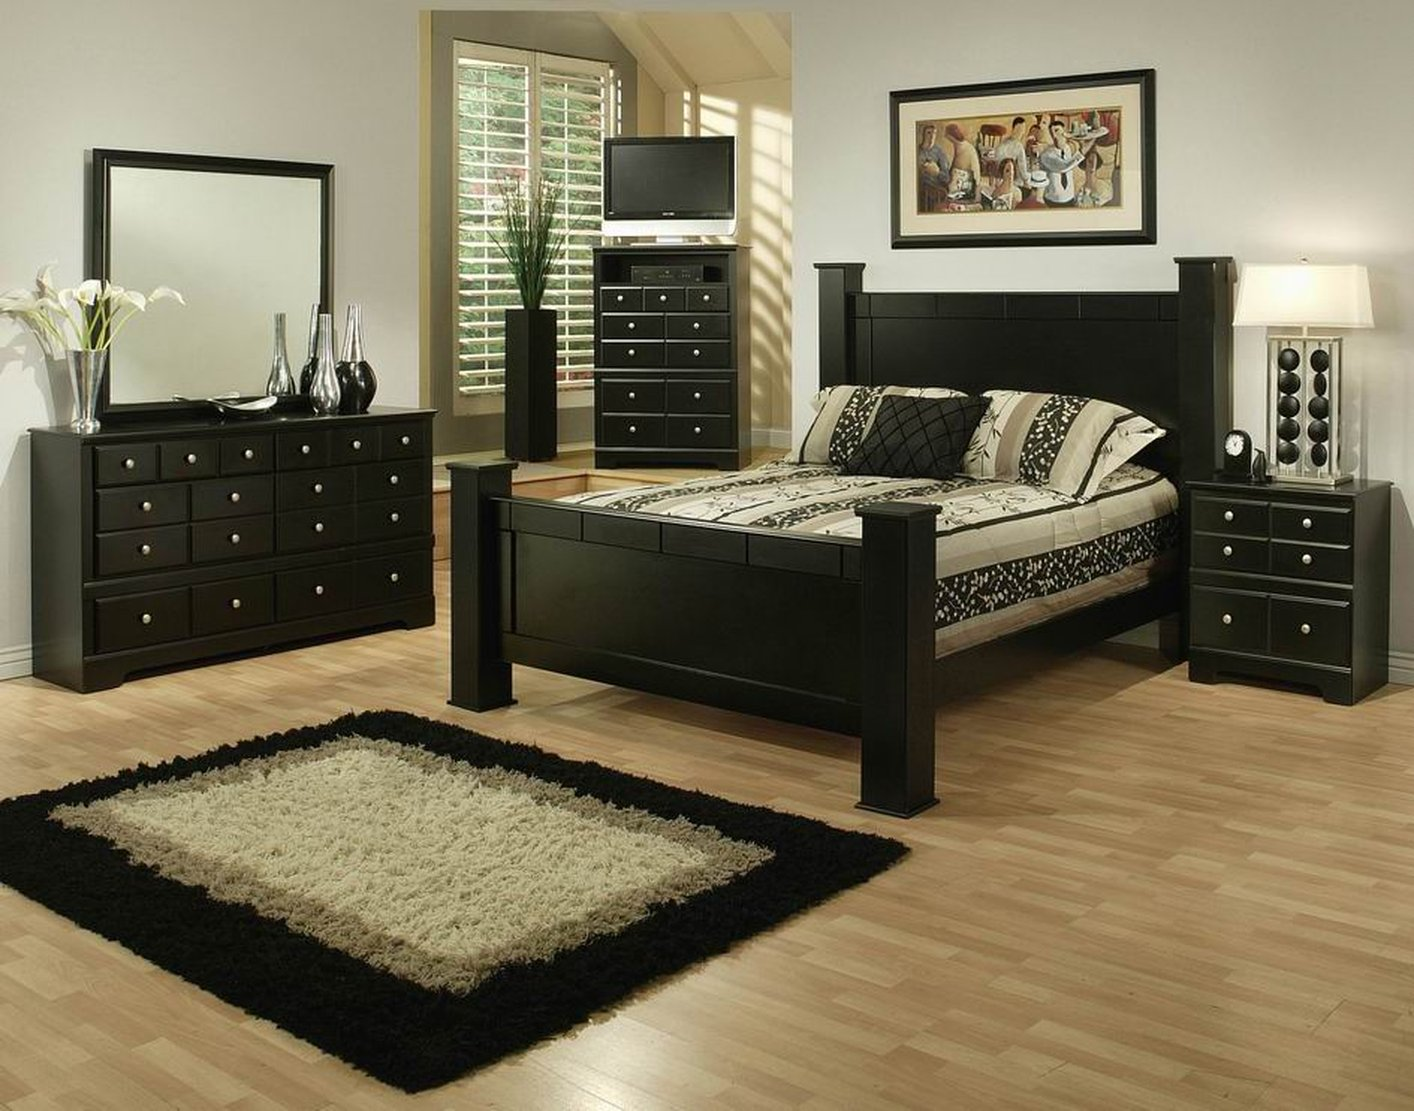 elena black wood california king size bed